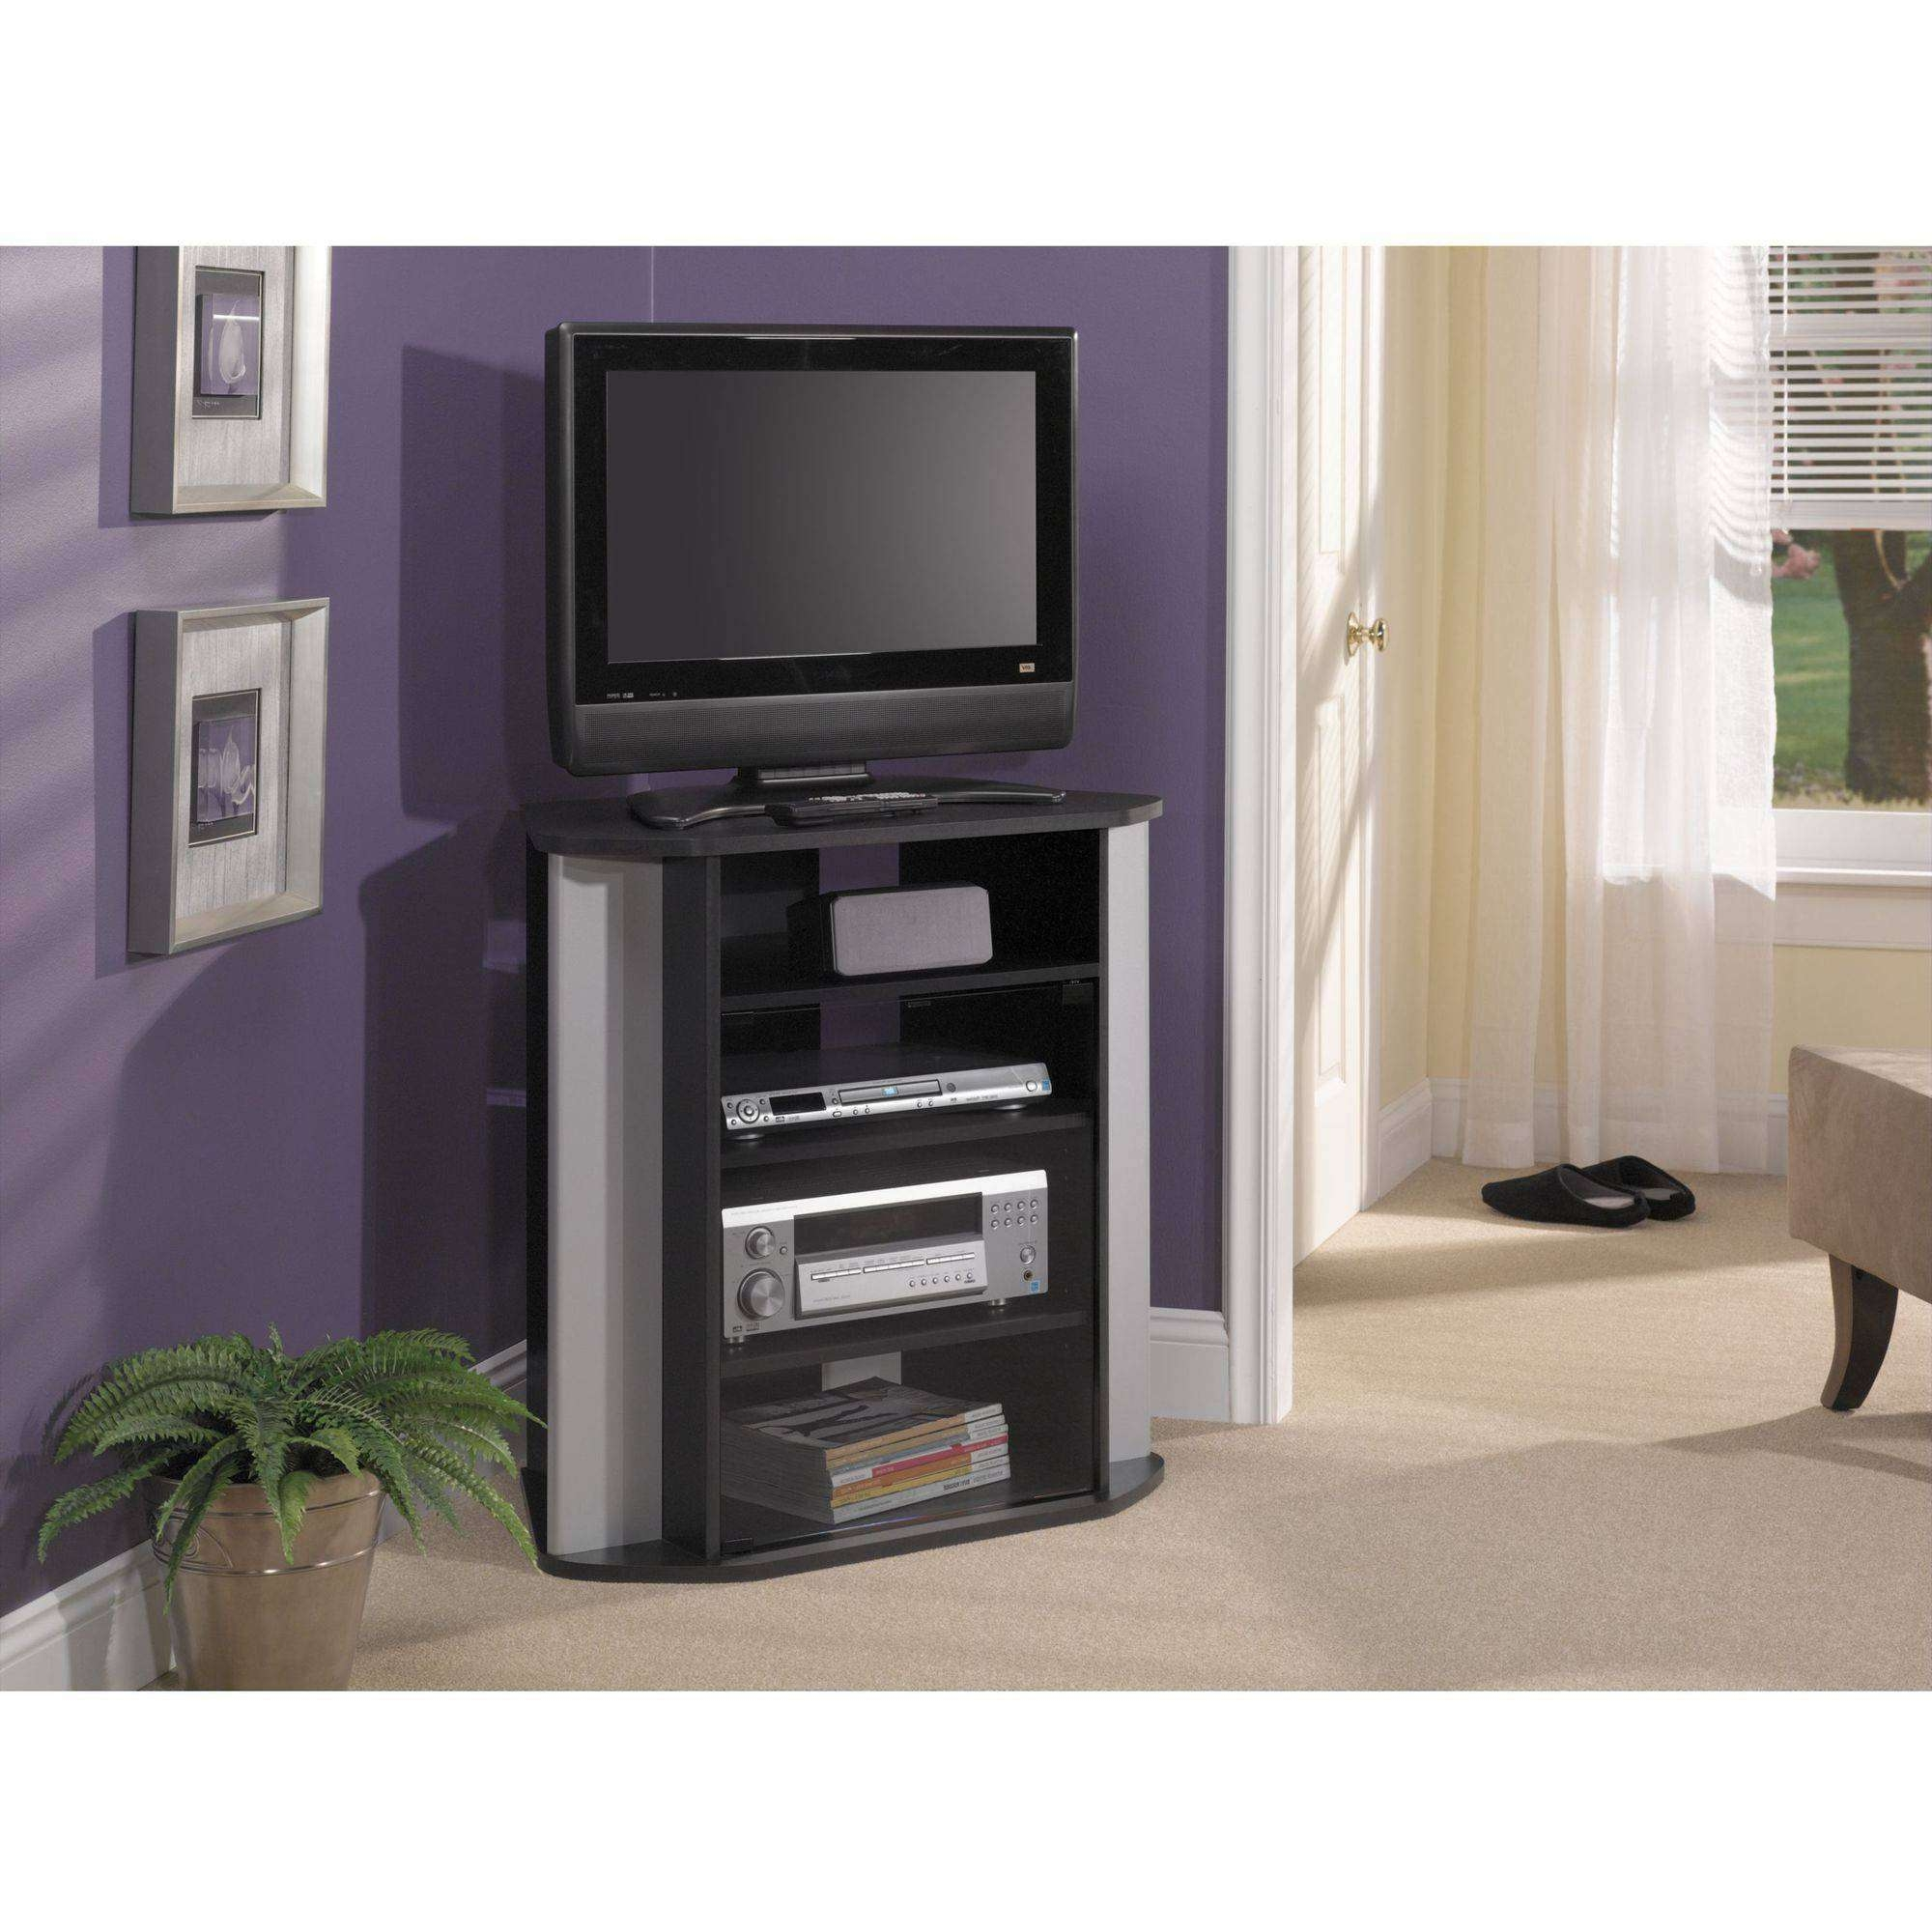 Bush Visions Black Tall Corner Tv Stand, For Tvs Up To 37 Pertaining To Modern Corner Tv Stands (View 2 of 20)